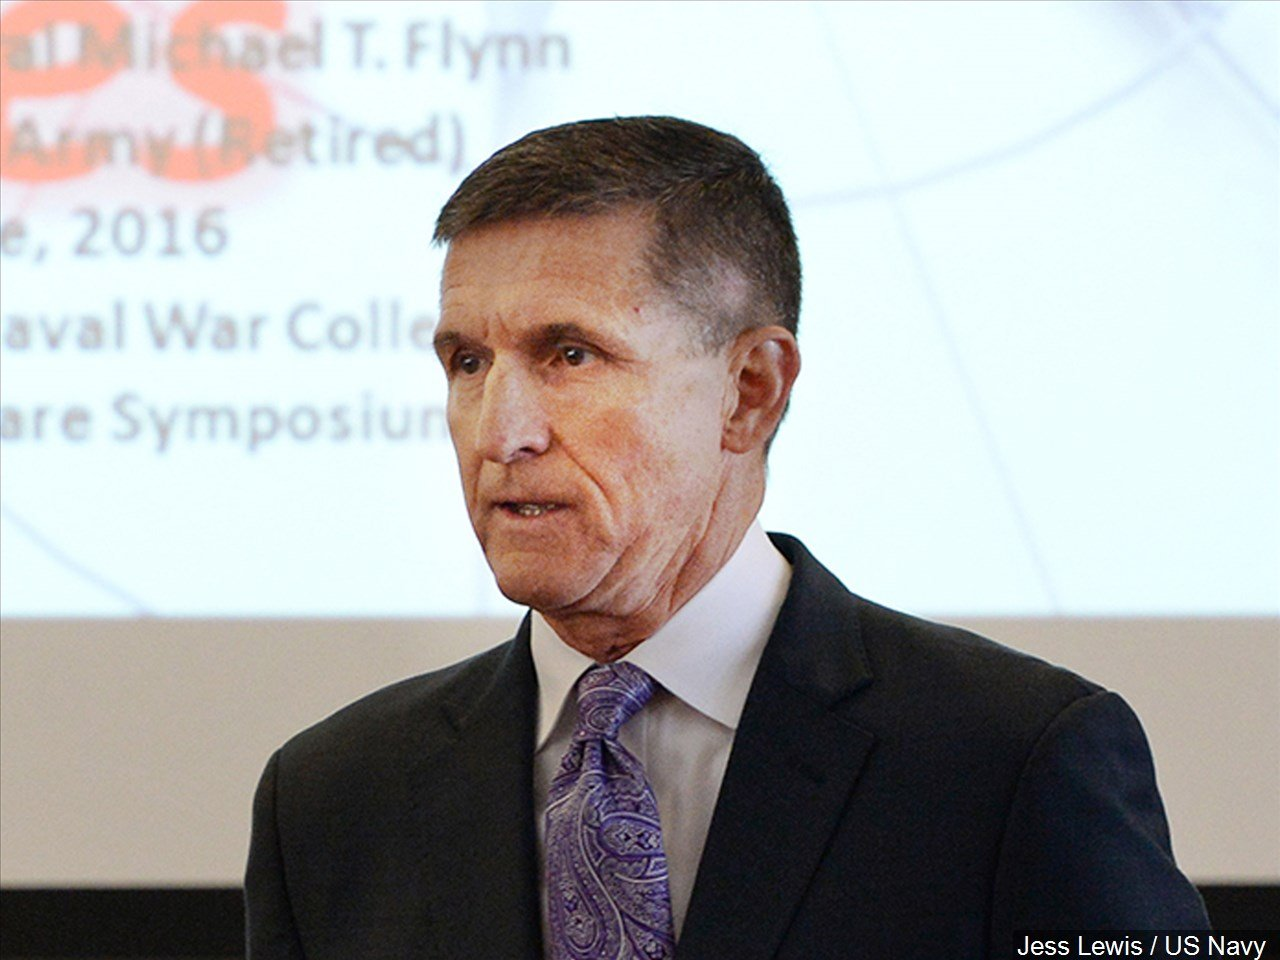 Yates: Alarm about Russian blackmail led to warning on Flynn